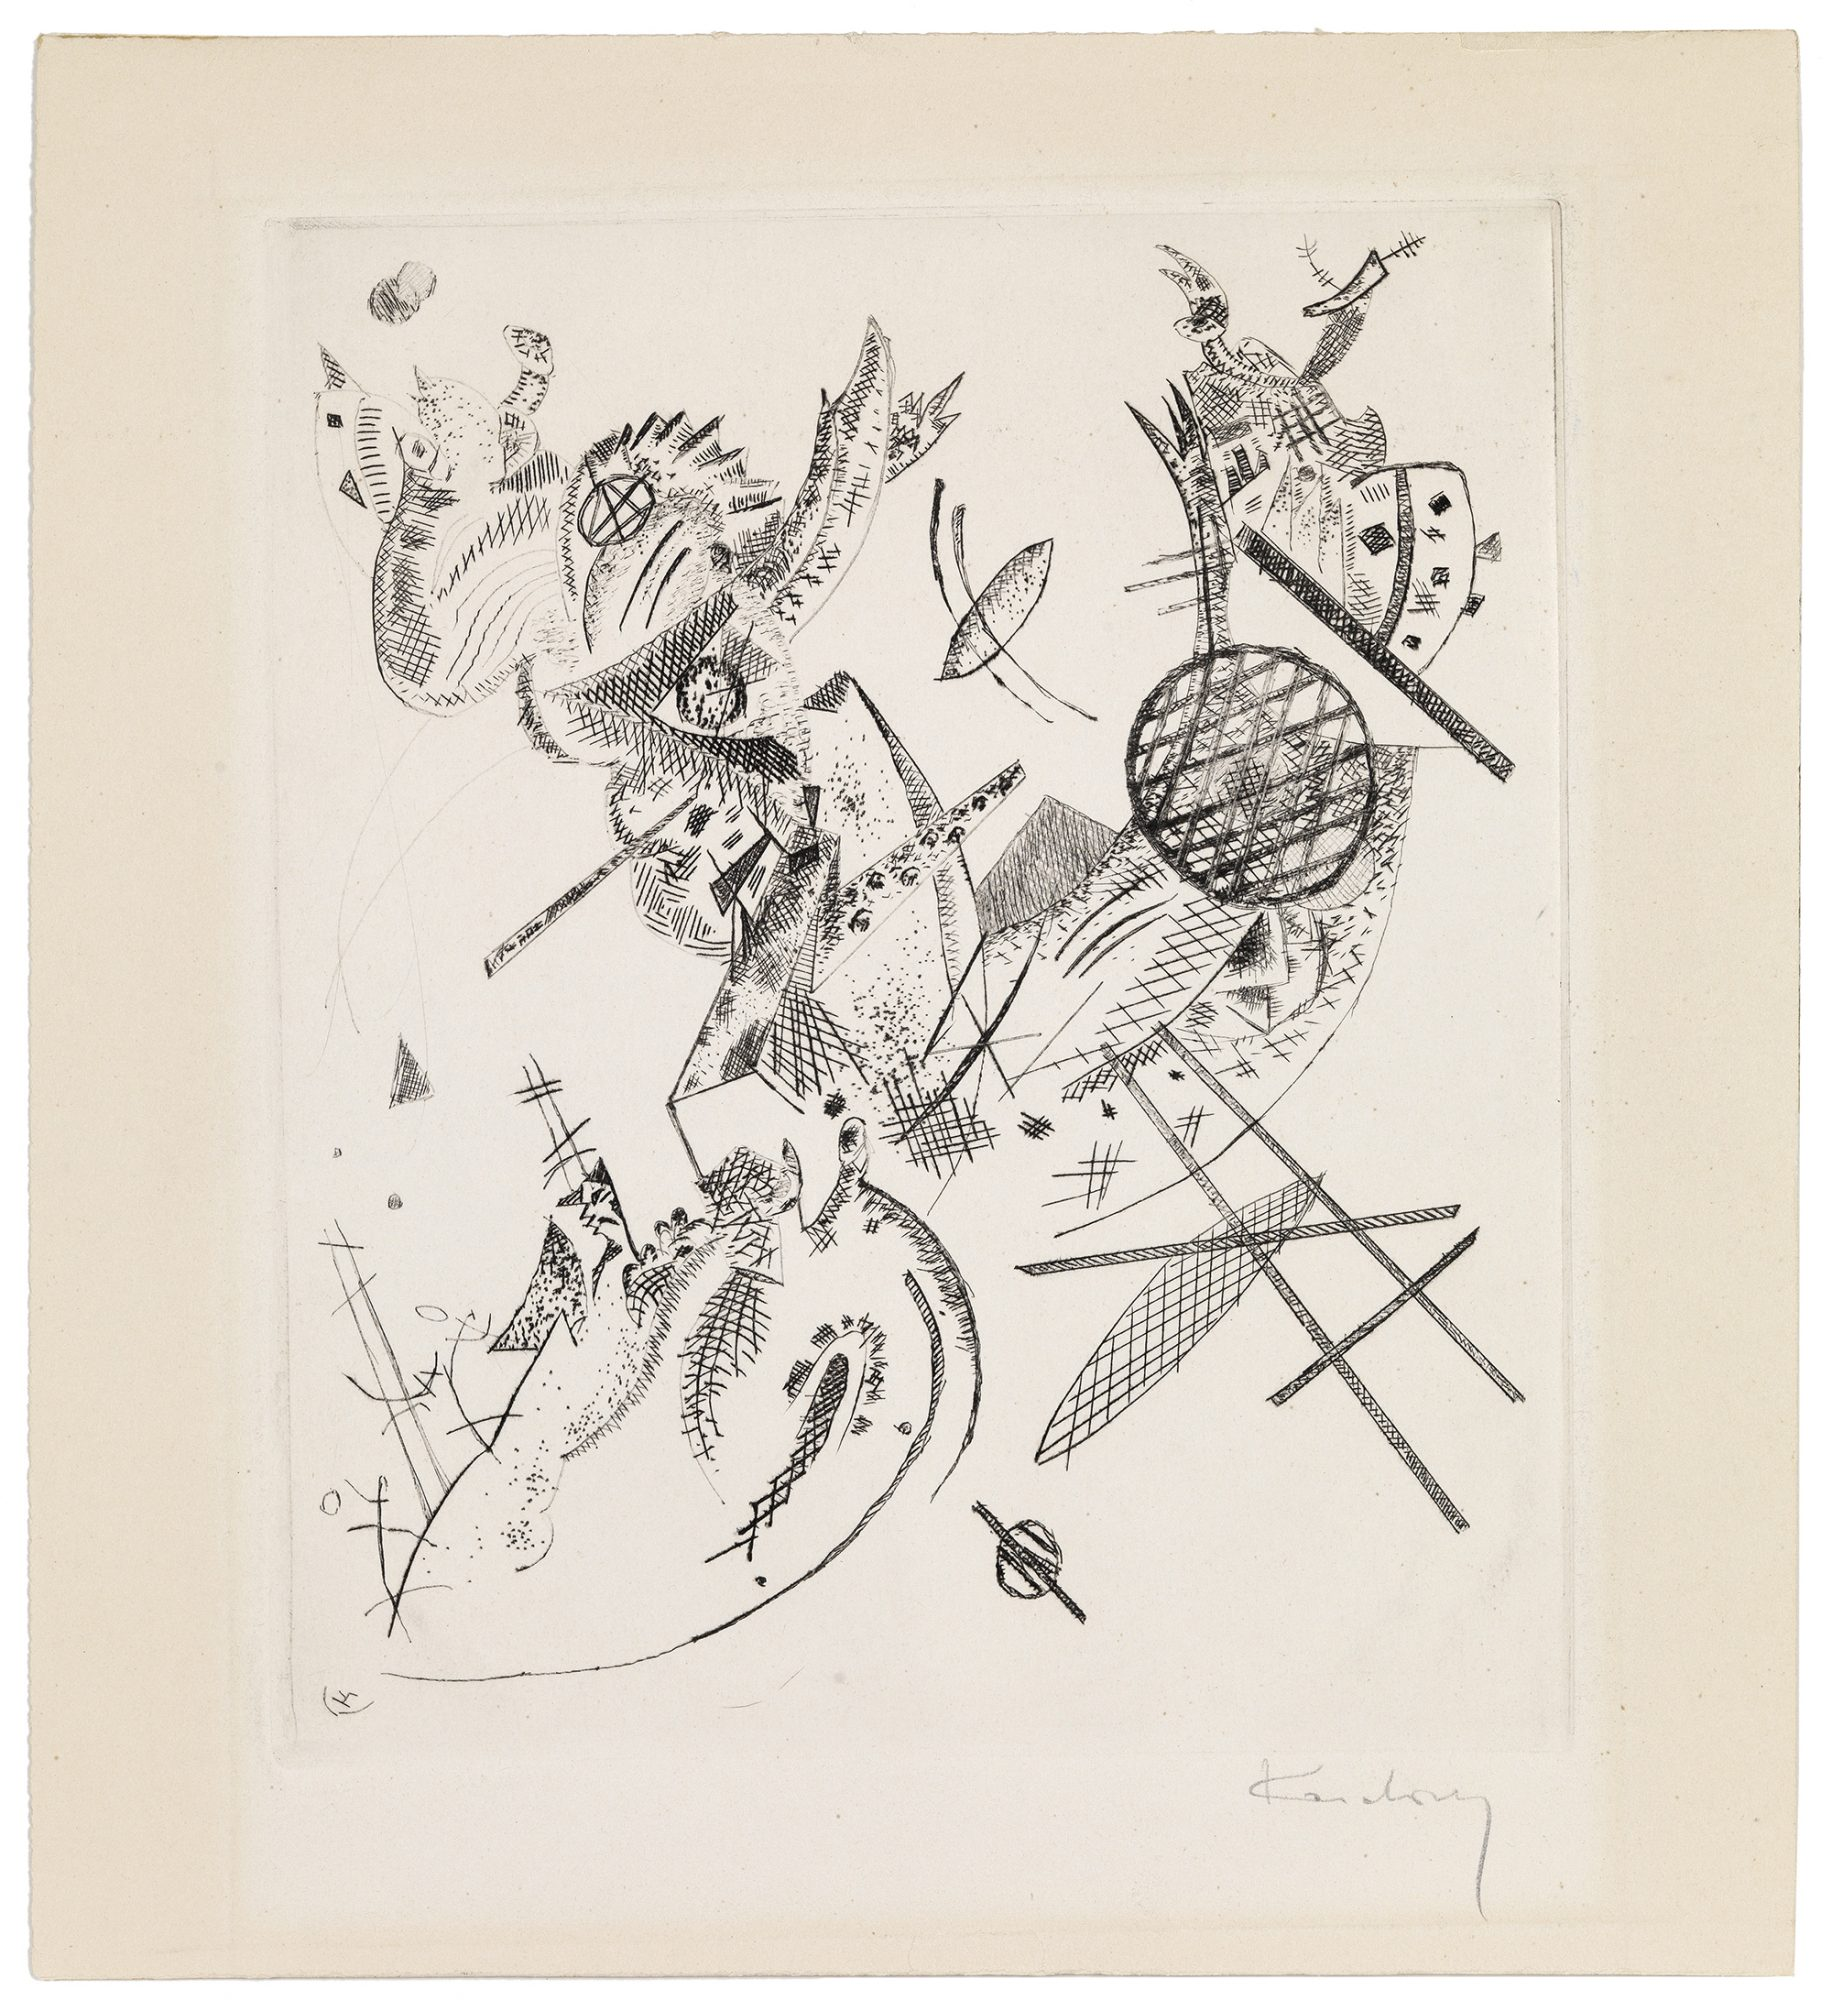 Wassily Kandinsky (Russian, 1866–1944) Kleine Welten XII (Small Worlds XII), 1922. Drypoint, 9 1/4 x 7 1/2 in. Gift of Madeleine P. and Harvey R. Plonsker, Class of 1961, M.2016.26.28